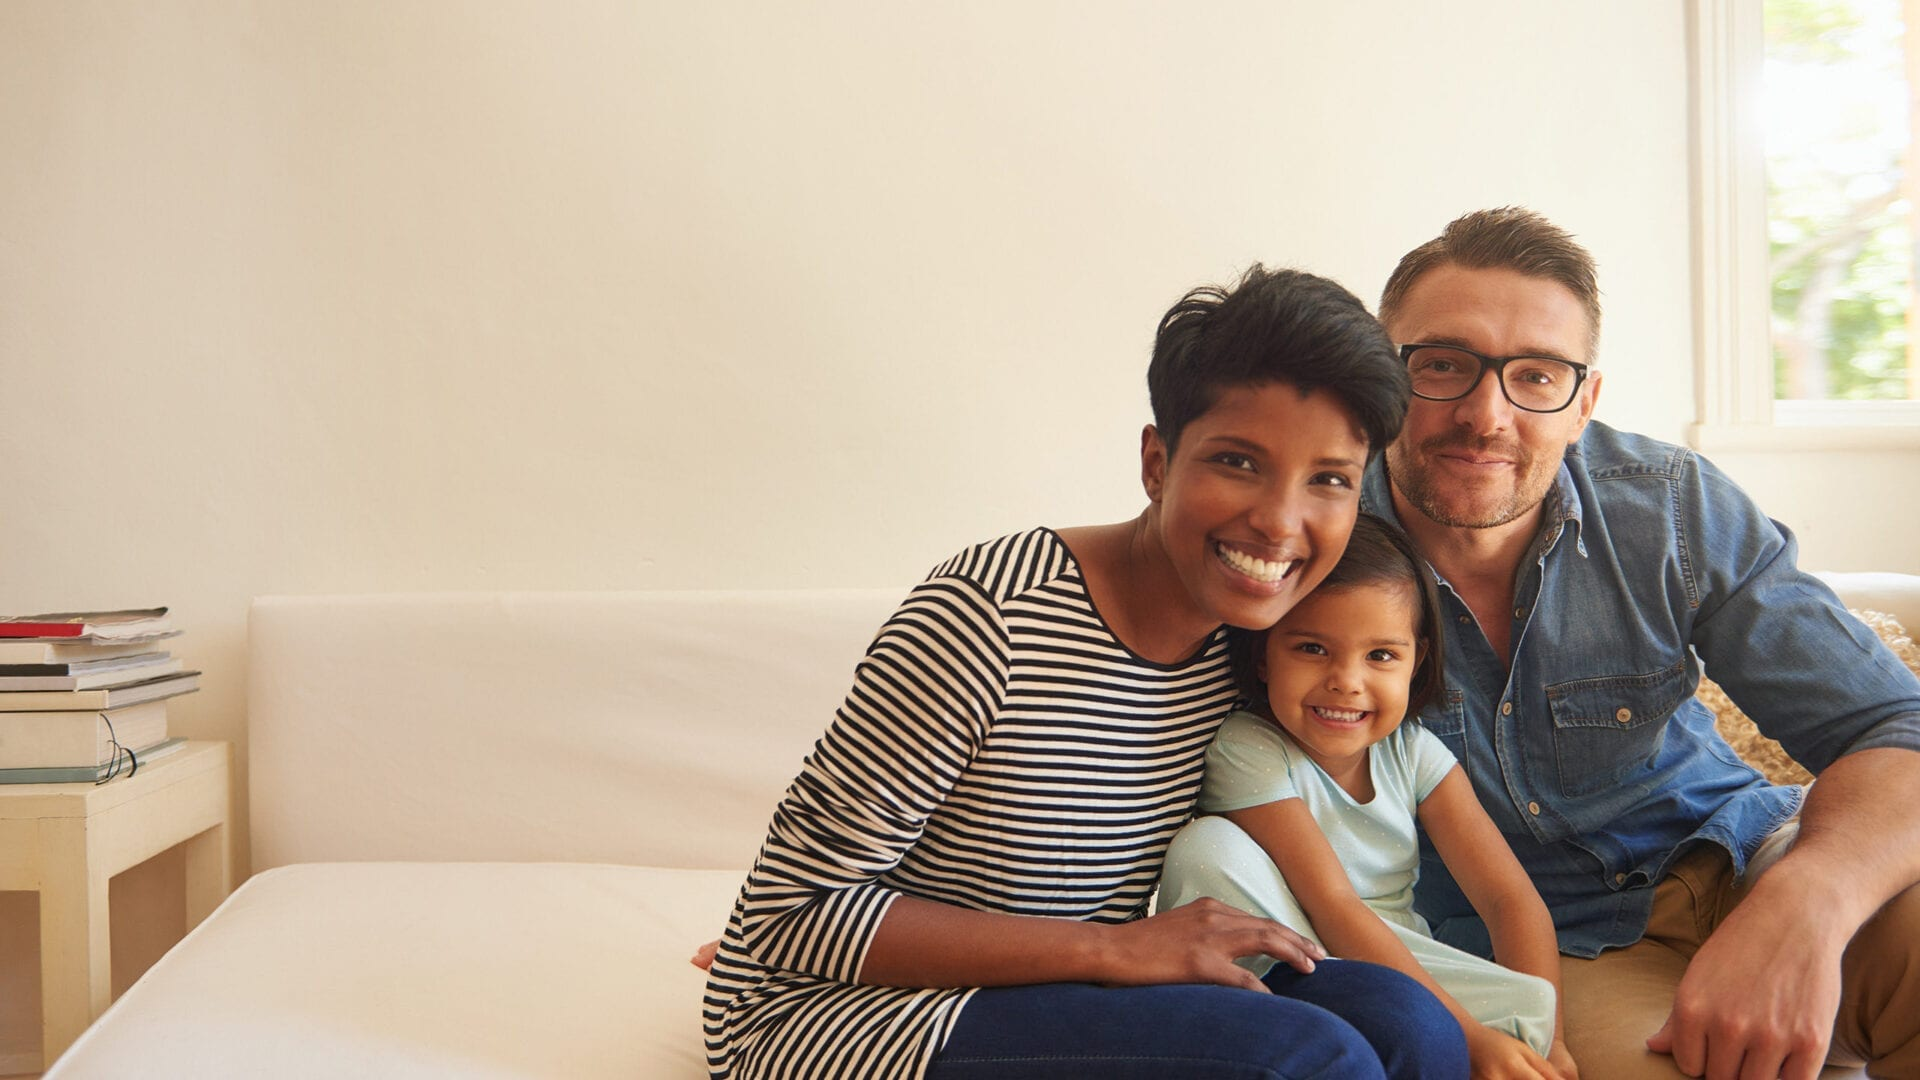 A smiling family of 3 sitting in living room